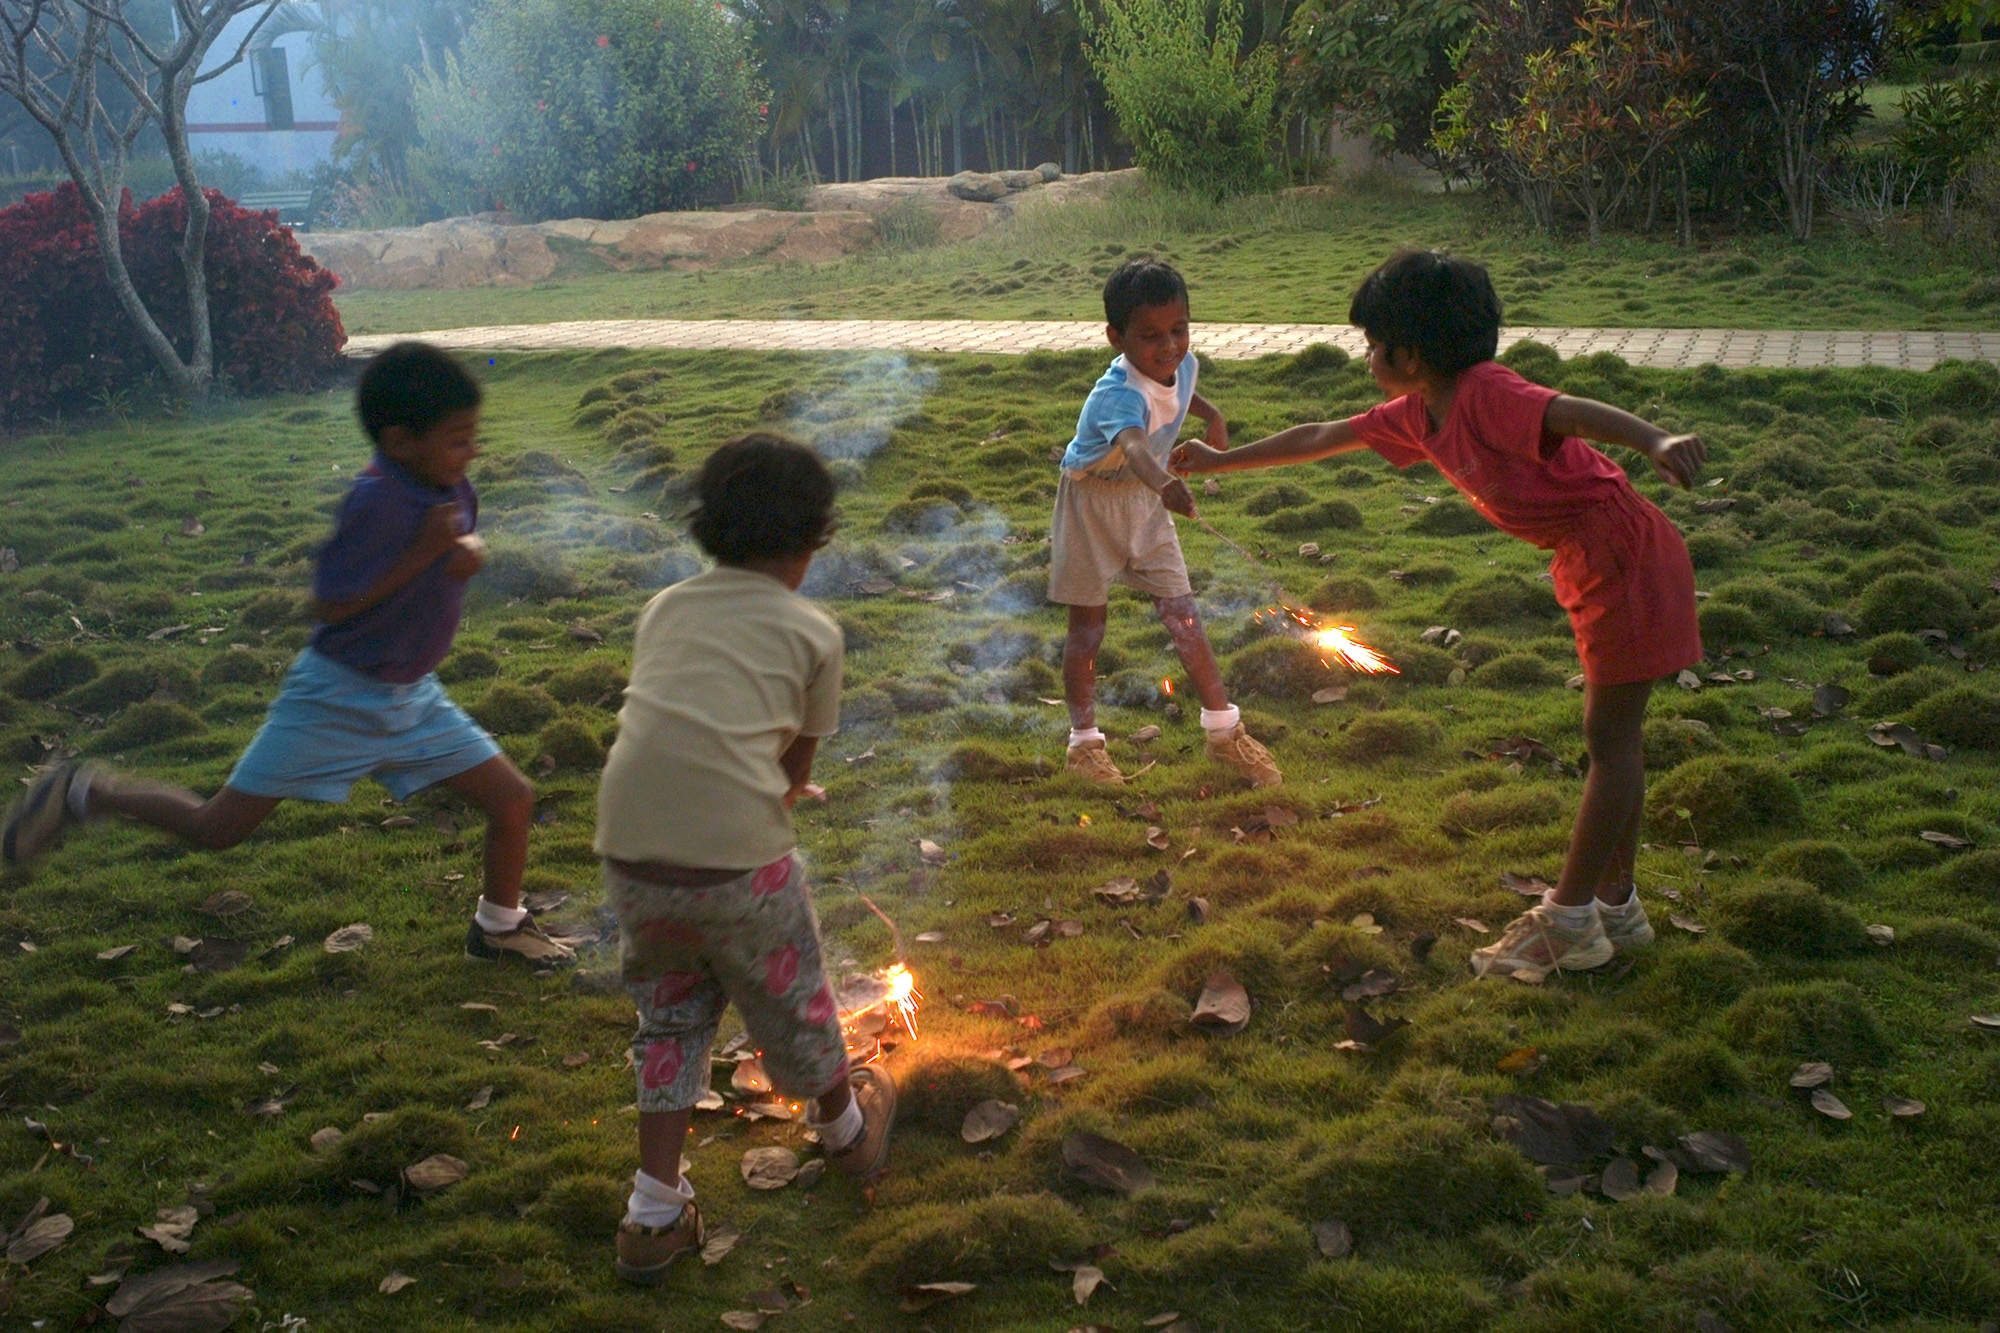 Students play with sparklers that were left over from the Indian holiday Diwali.